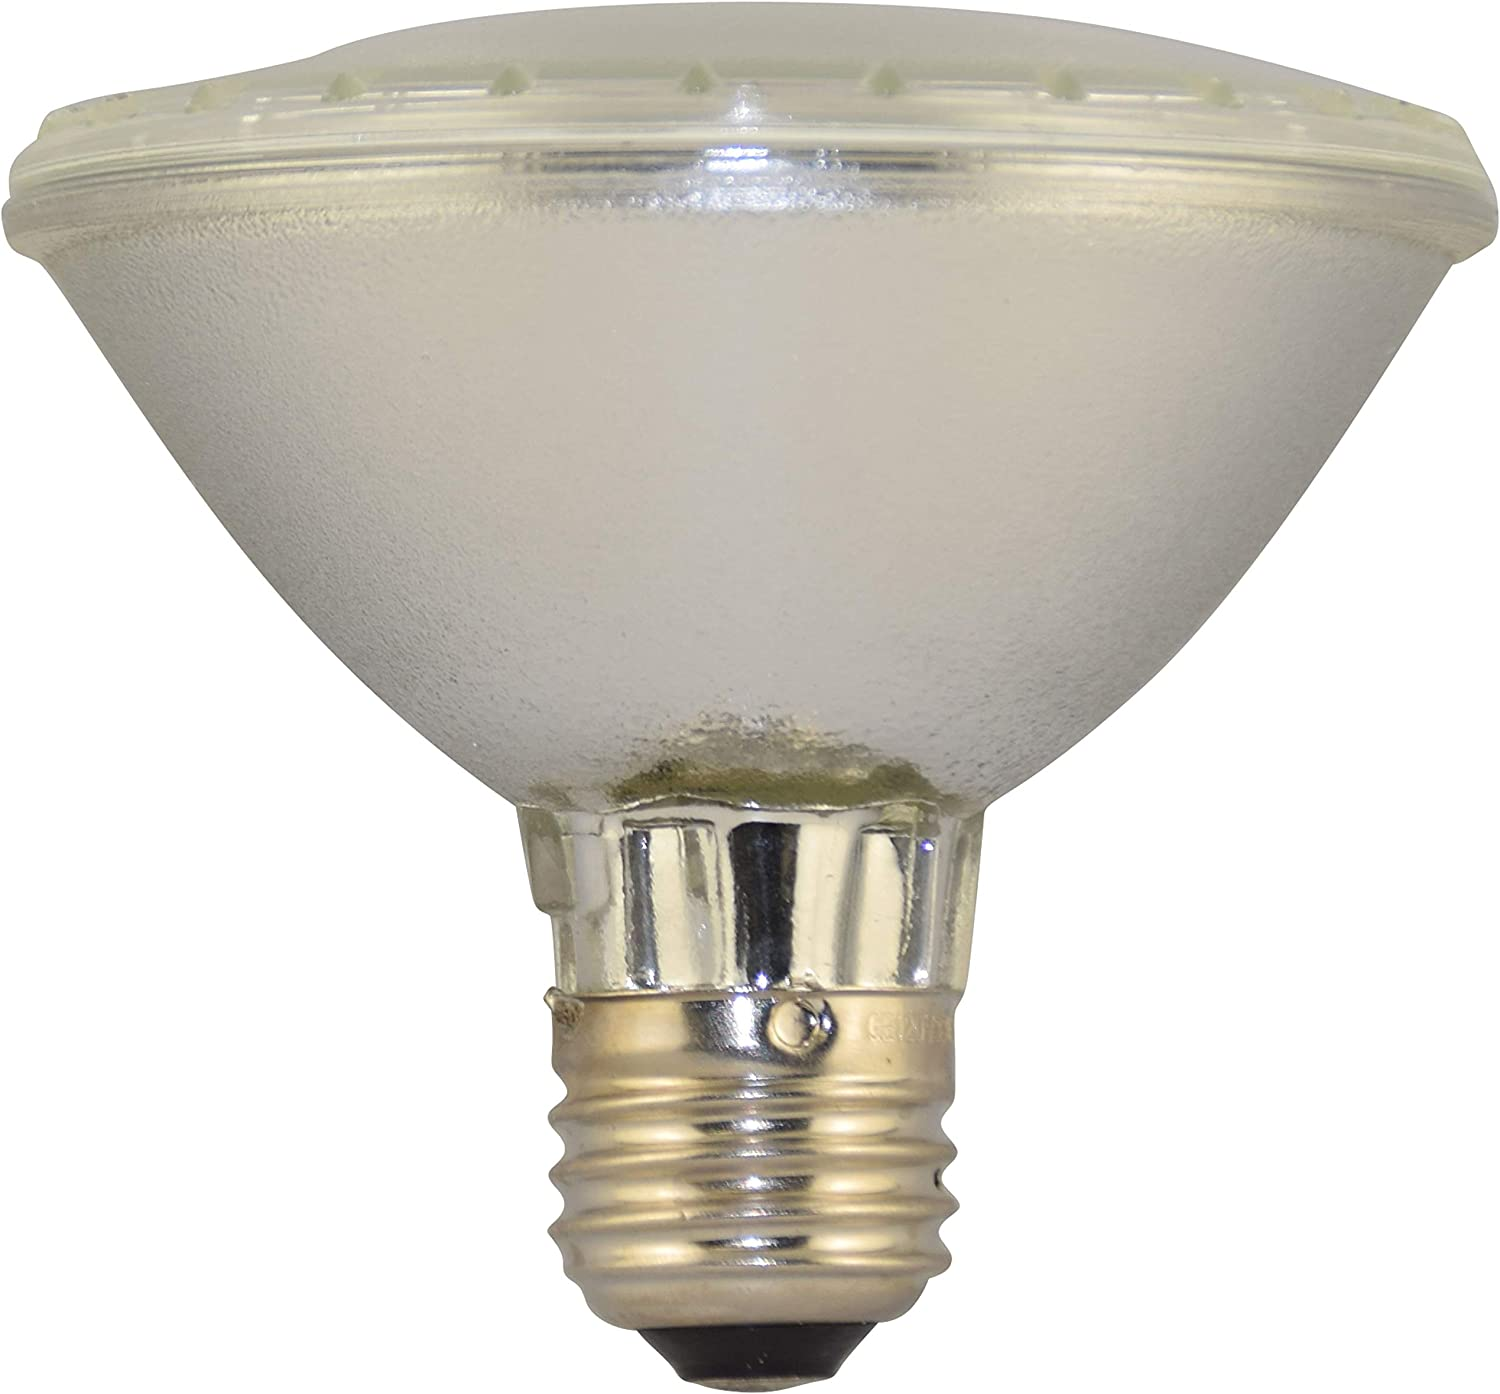 Replacement for Ge General Electric G.e 17871 Light Bulb by Technical Precision